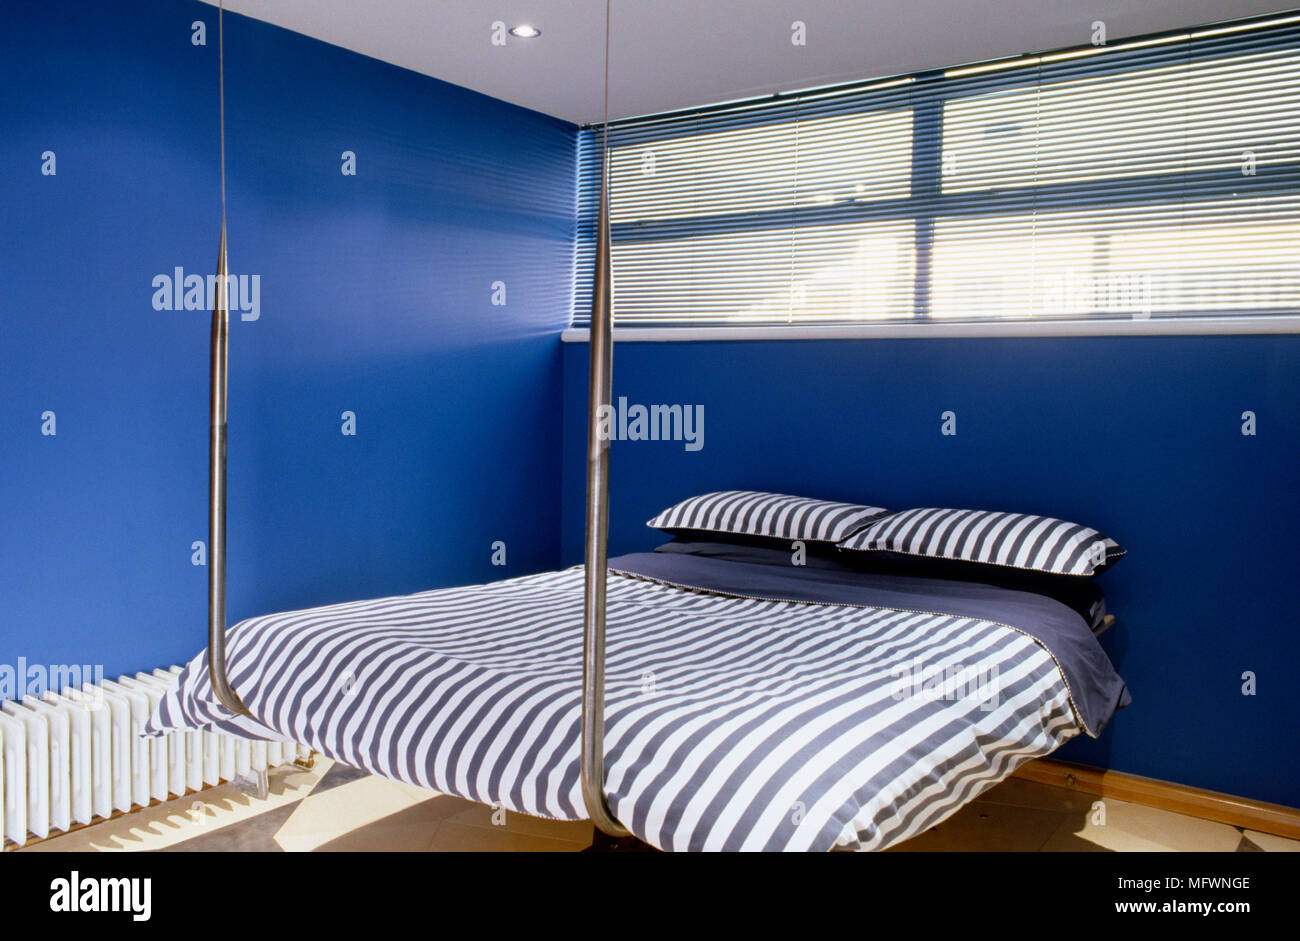 Suspended metal bed with striped bed linen beneath high ...